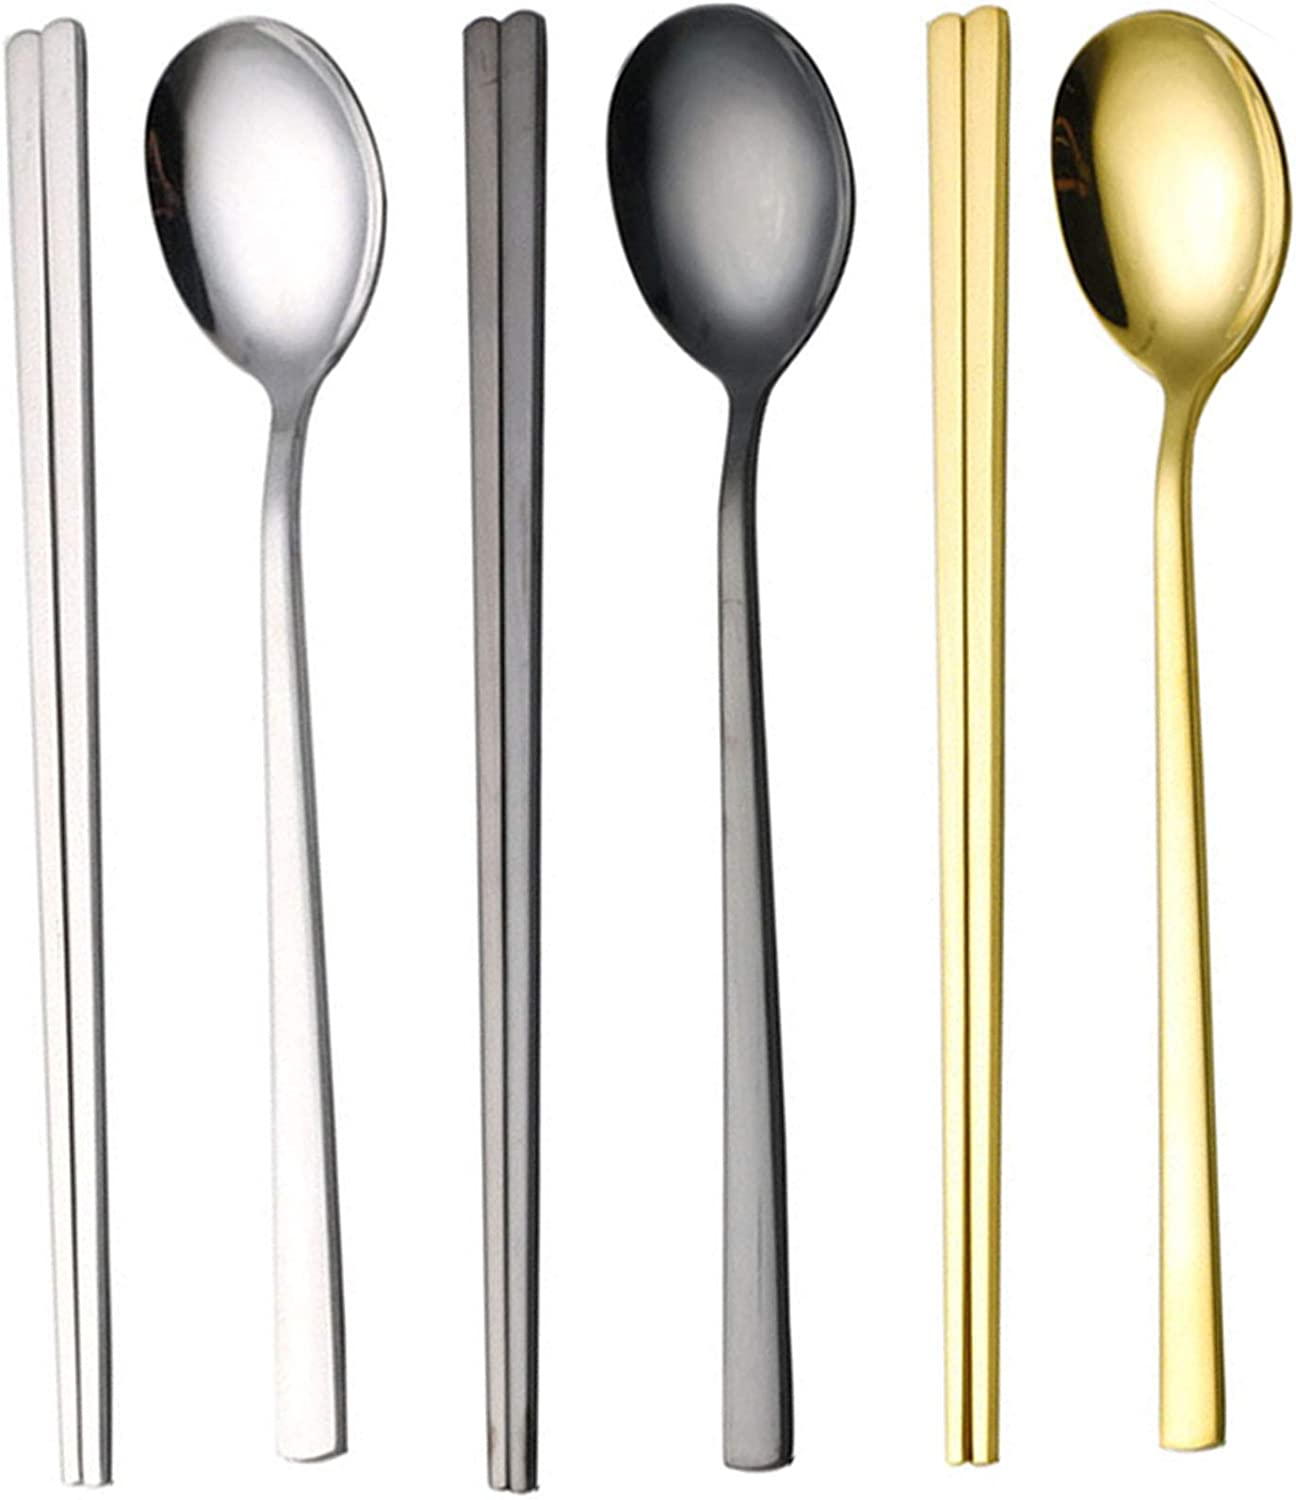 Korean Chopsticks and Spoon Set, Long-handle Reusable Stainless Steel Flat Square Chopsticks and Spoon Flatware(Silver+Gold+Black), Set of 3.